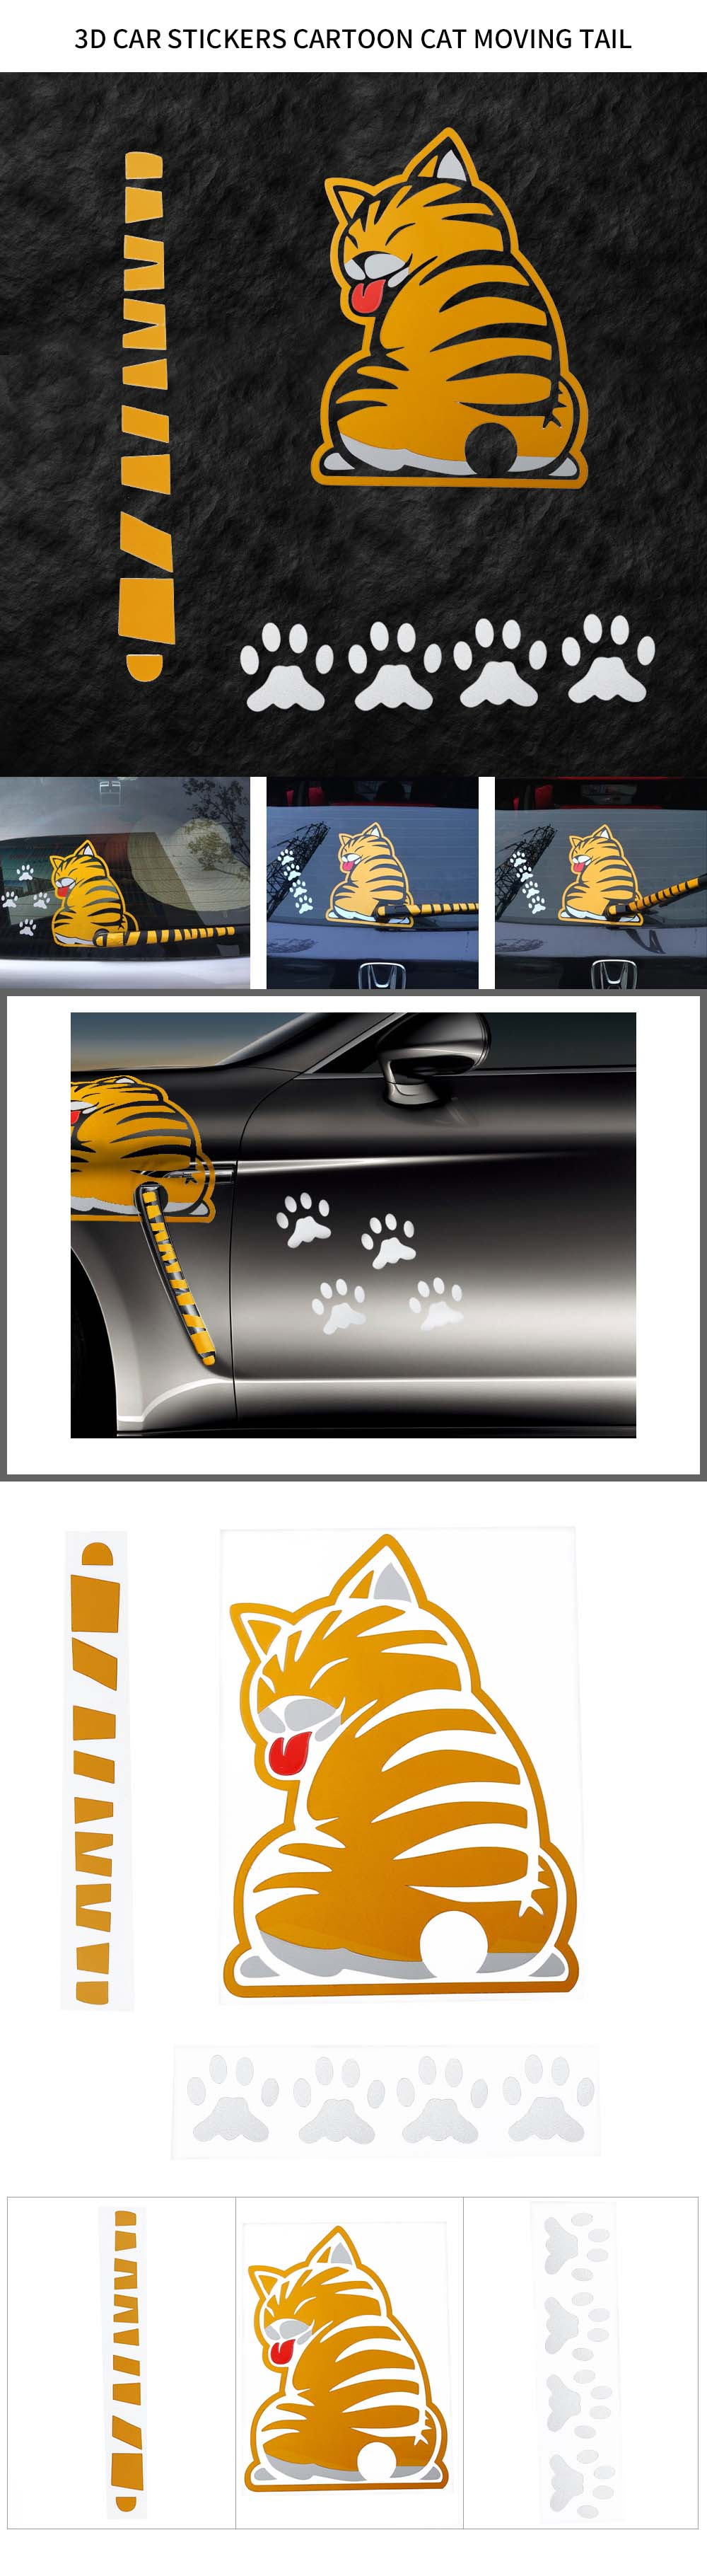 3D Car Stickers Cartoon Funny Cat Moving Tail Reflective Car Styling Decals Rear Windshield Decor